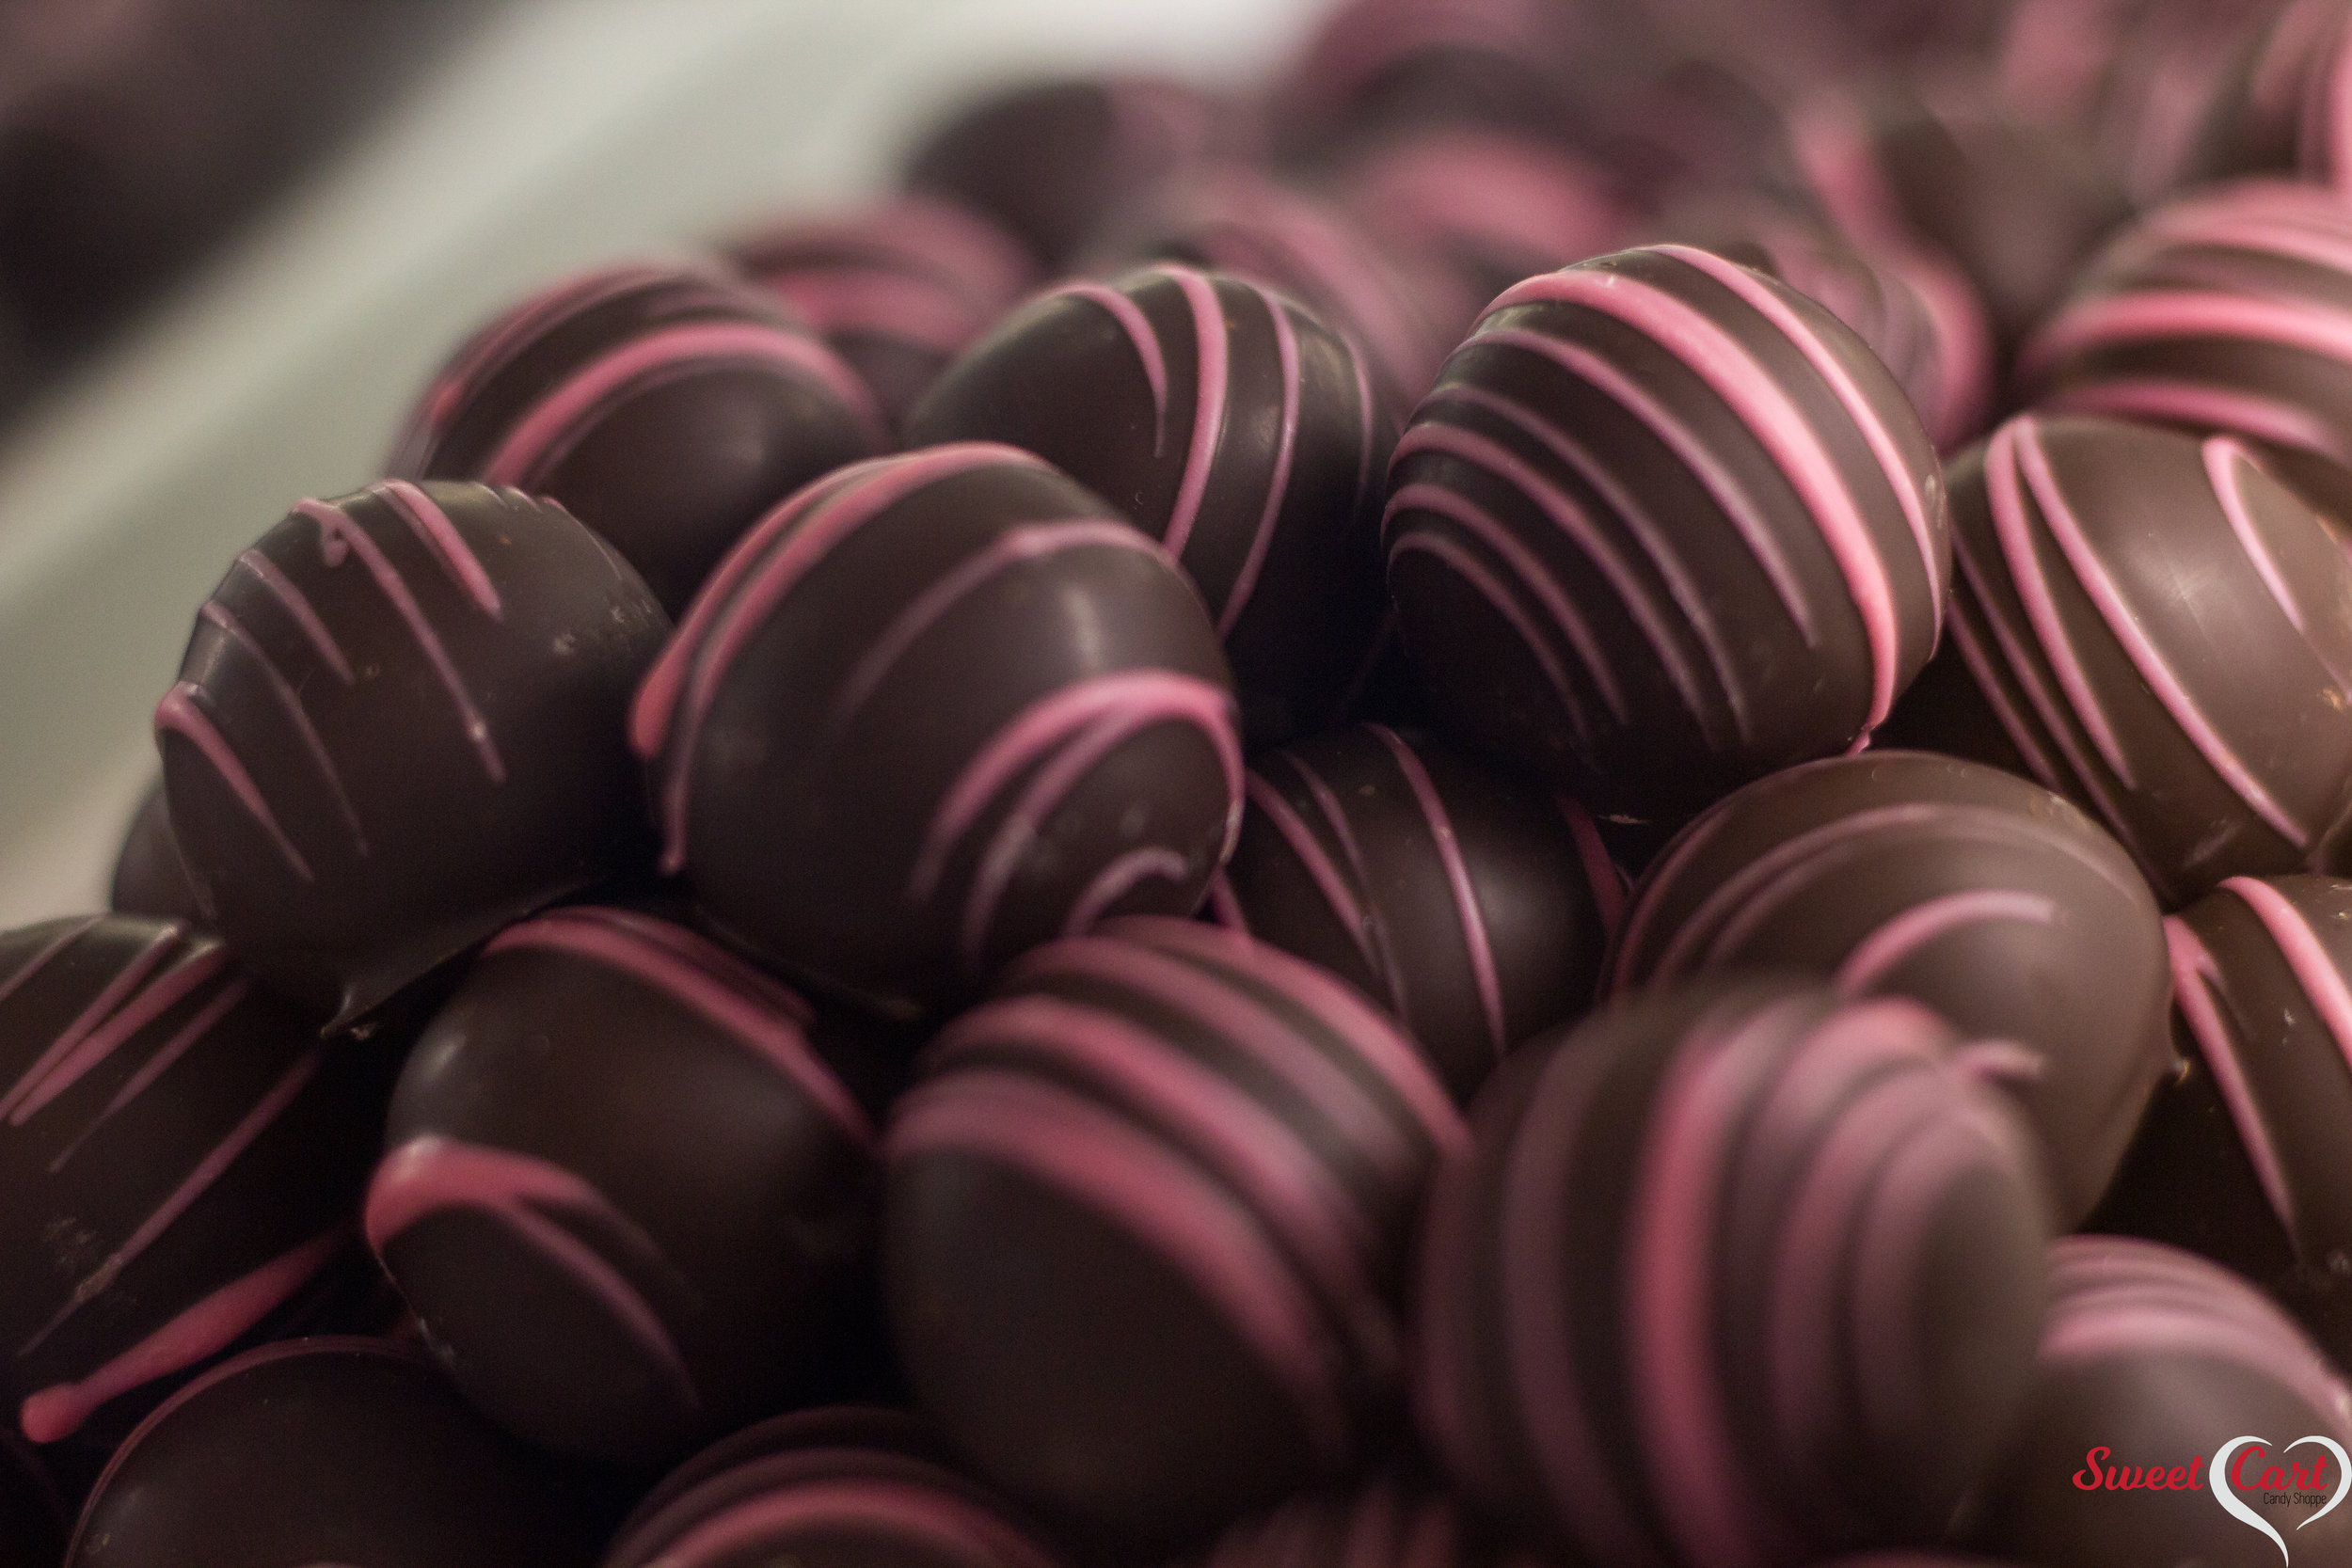 Raspberry Truffles   Rich Dark Chocolate inside & out. Accented with a Raspberry Drizzle making for a delicious combination of flavors!